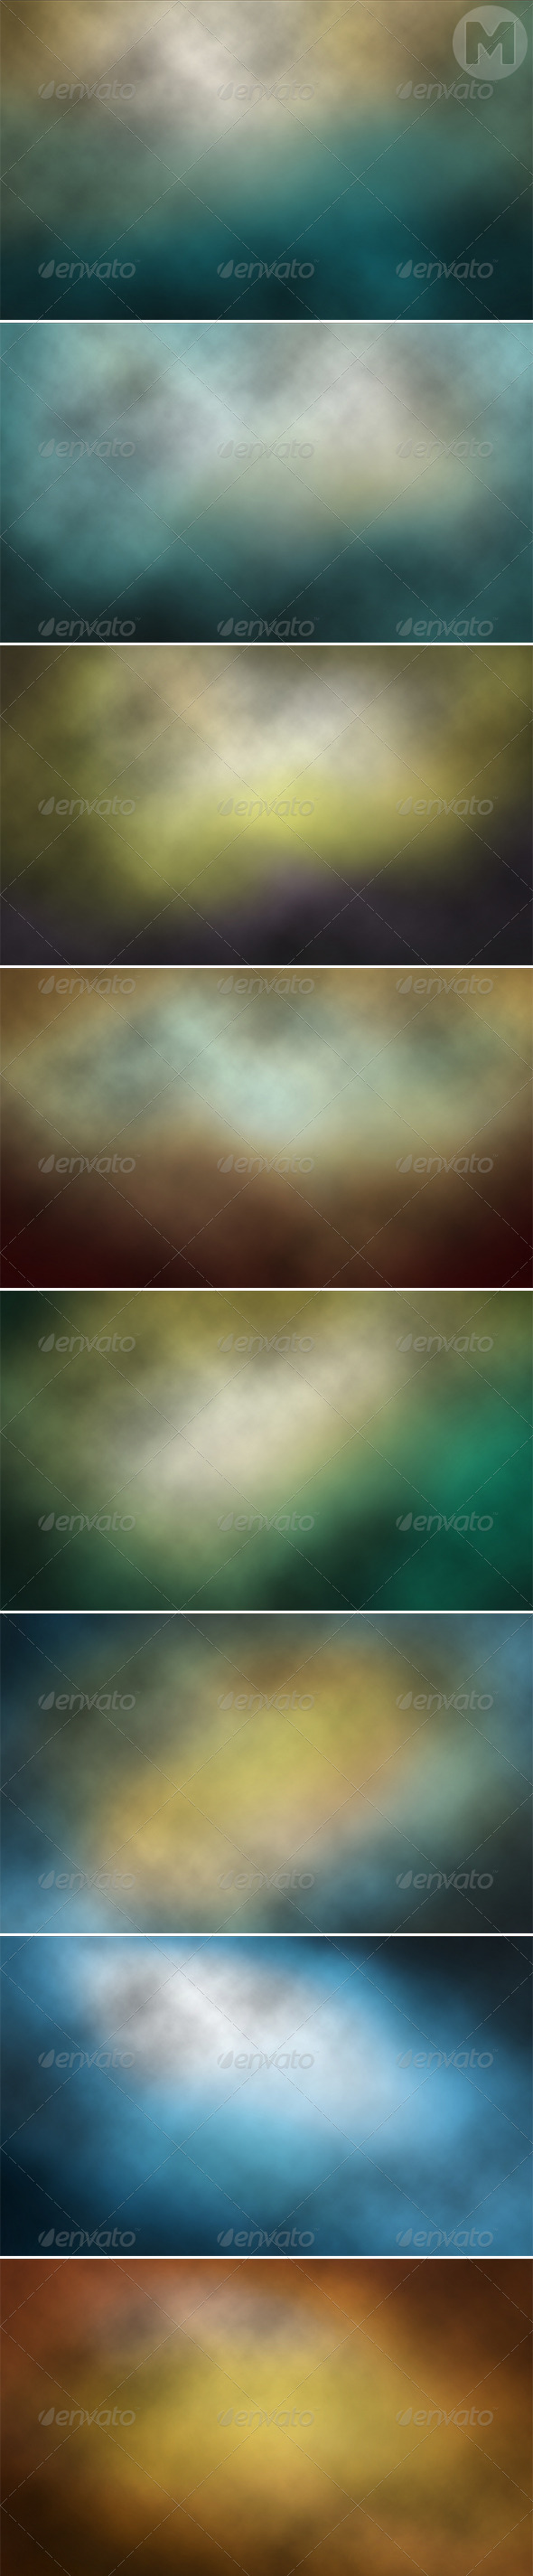 GraphicRiver Clouds Blurred Backgrounds 7640291